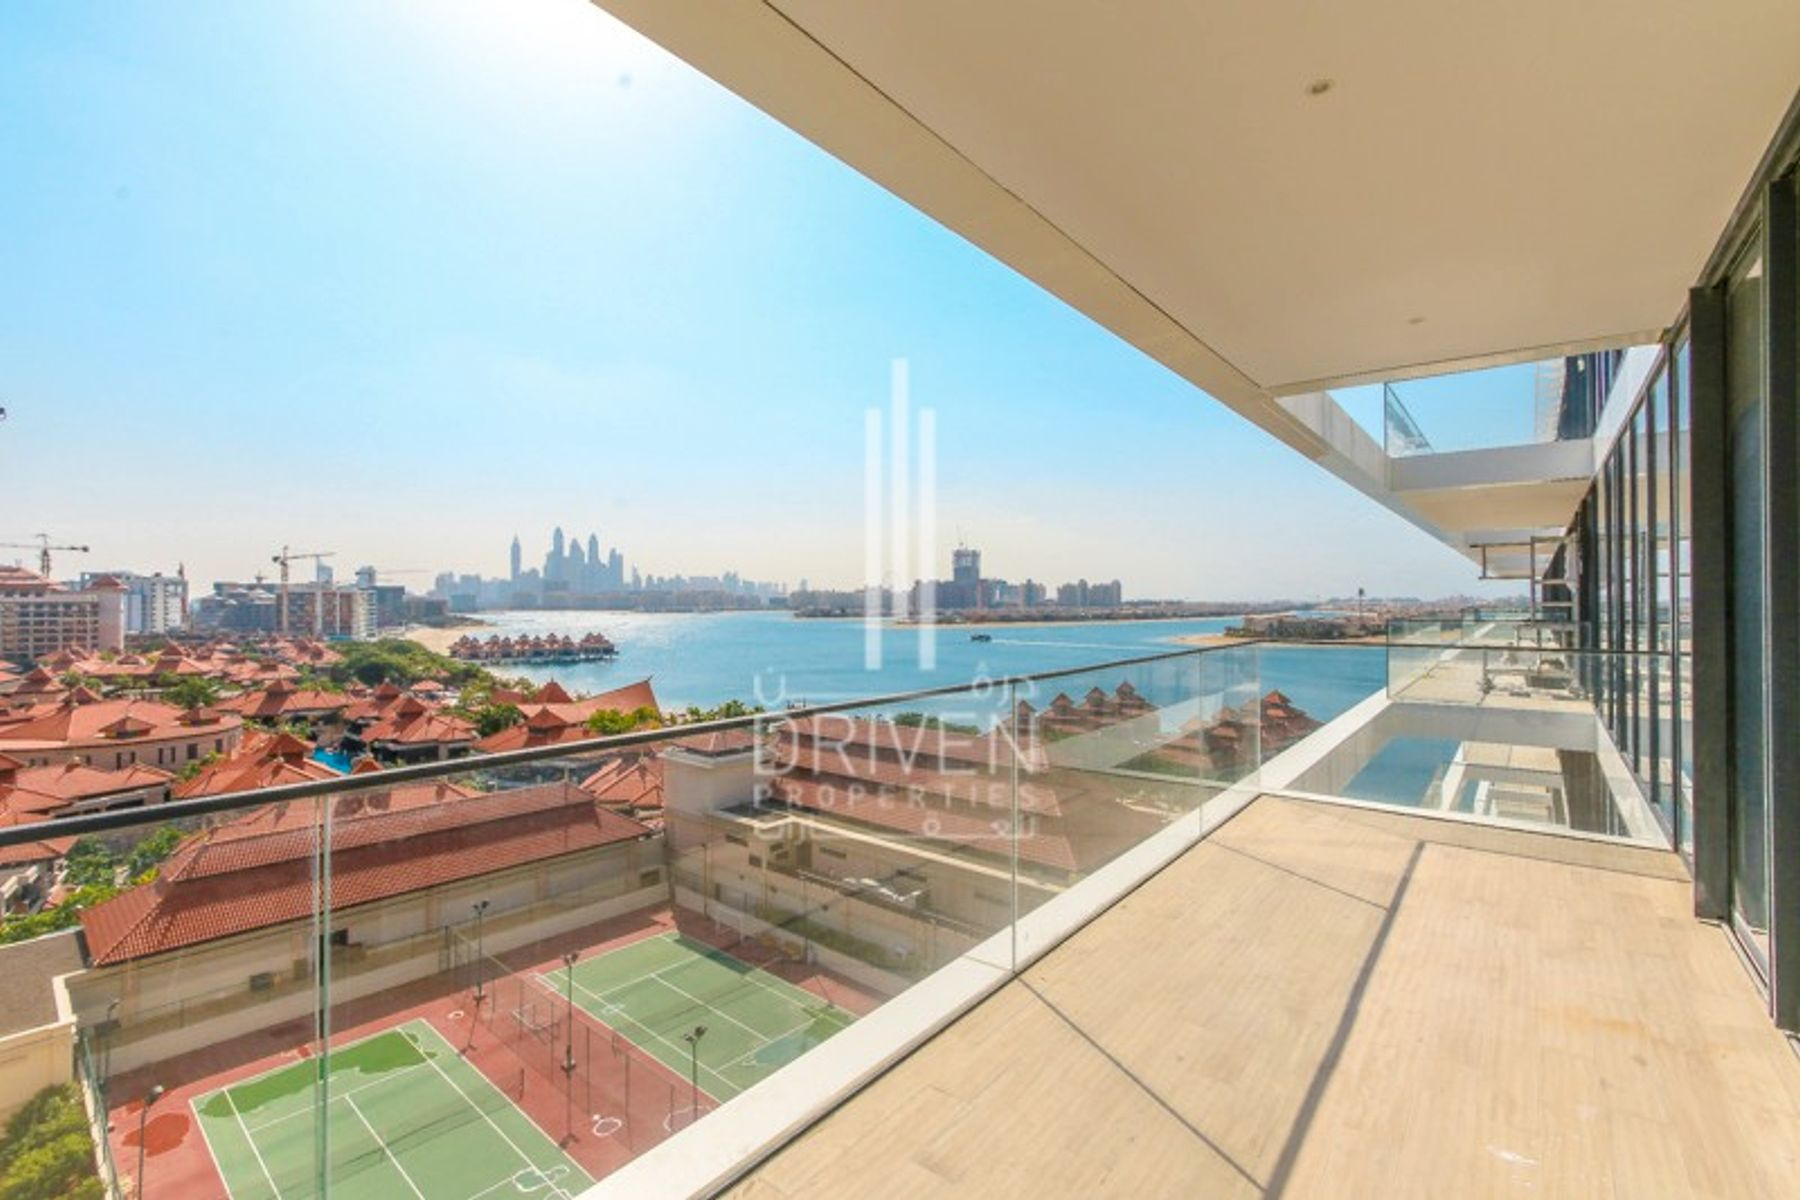 Apartment for Sale in Serenia Residences East, Palm Jumeirah